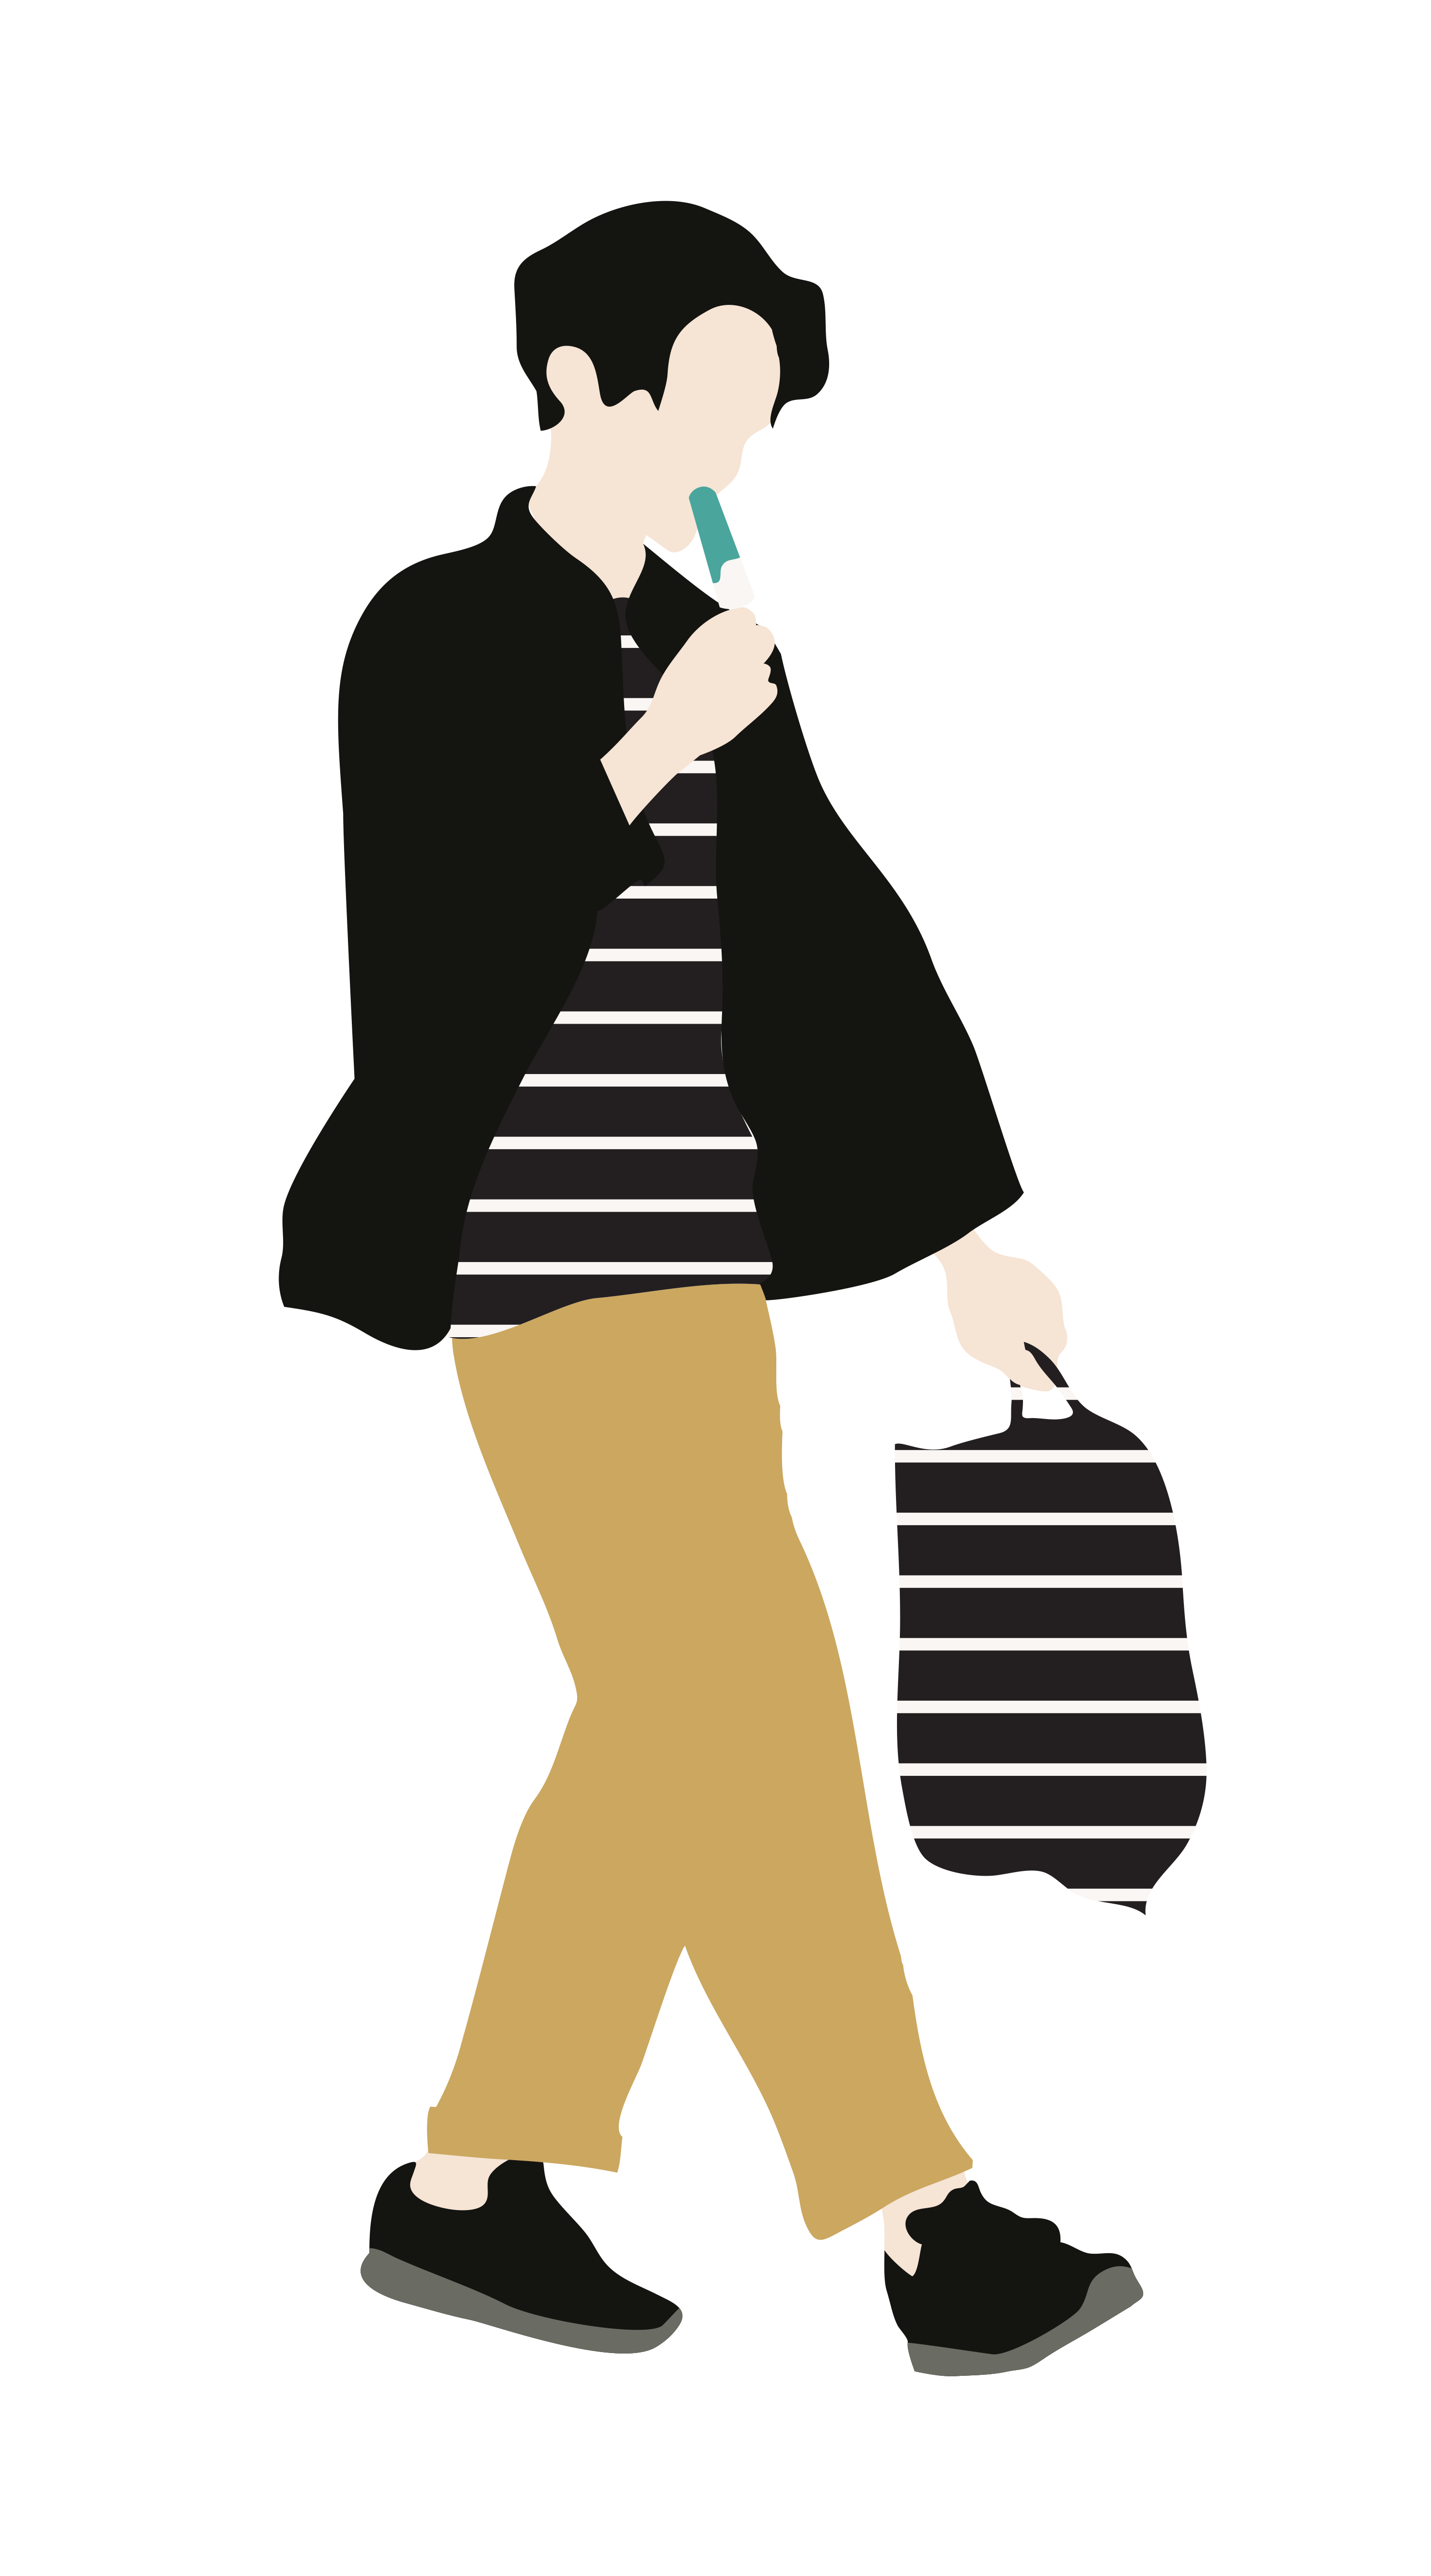 15 Vector Common People Pack Toffu For more https